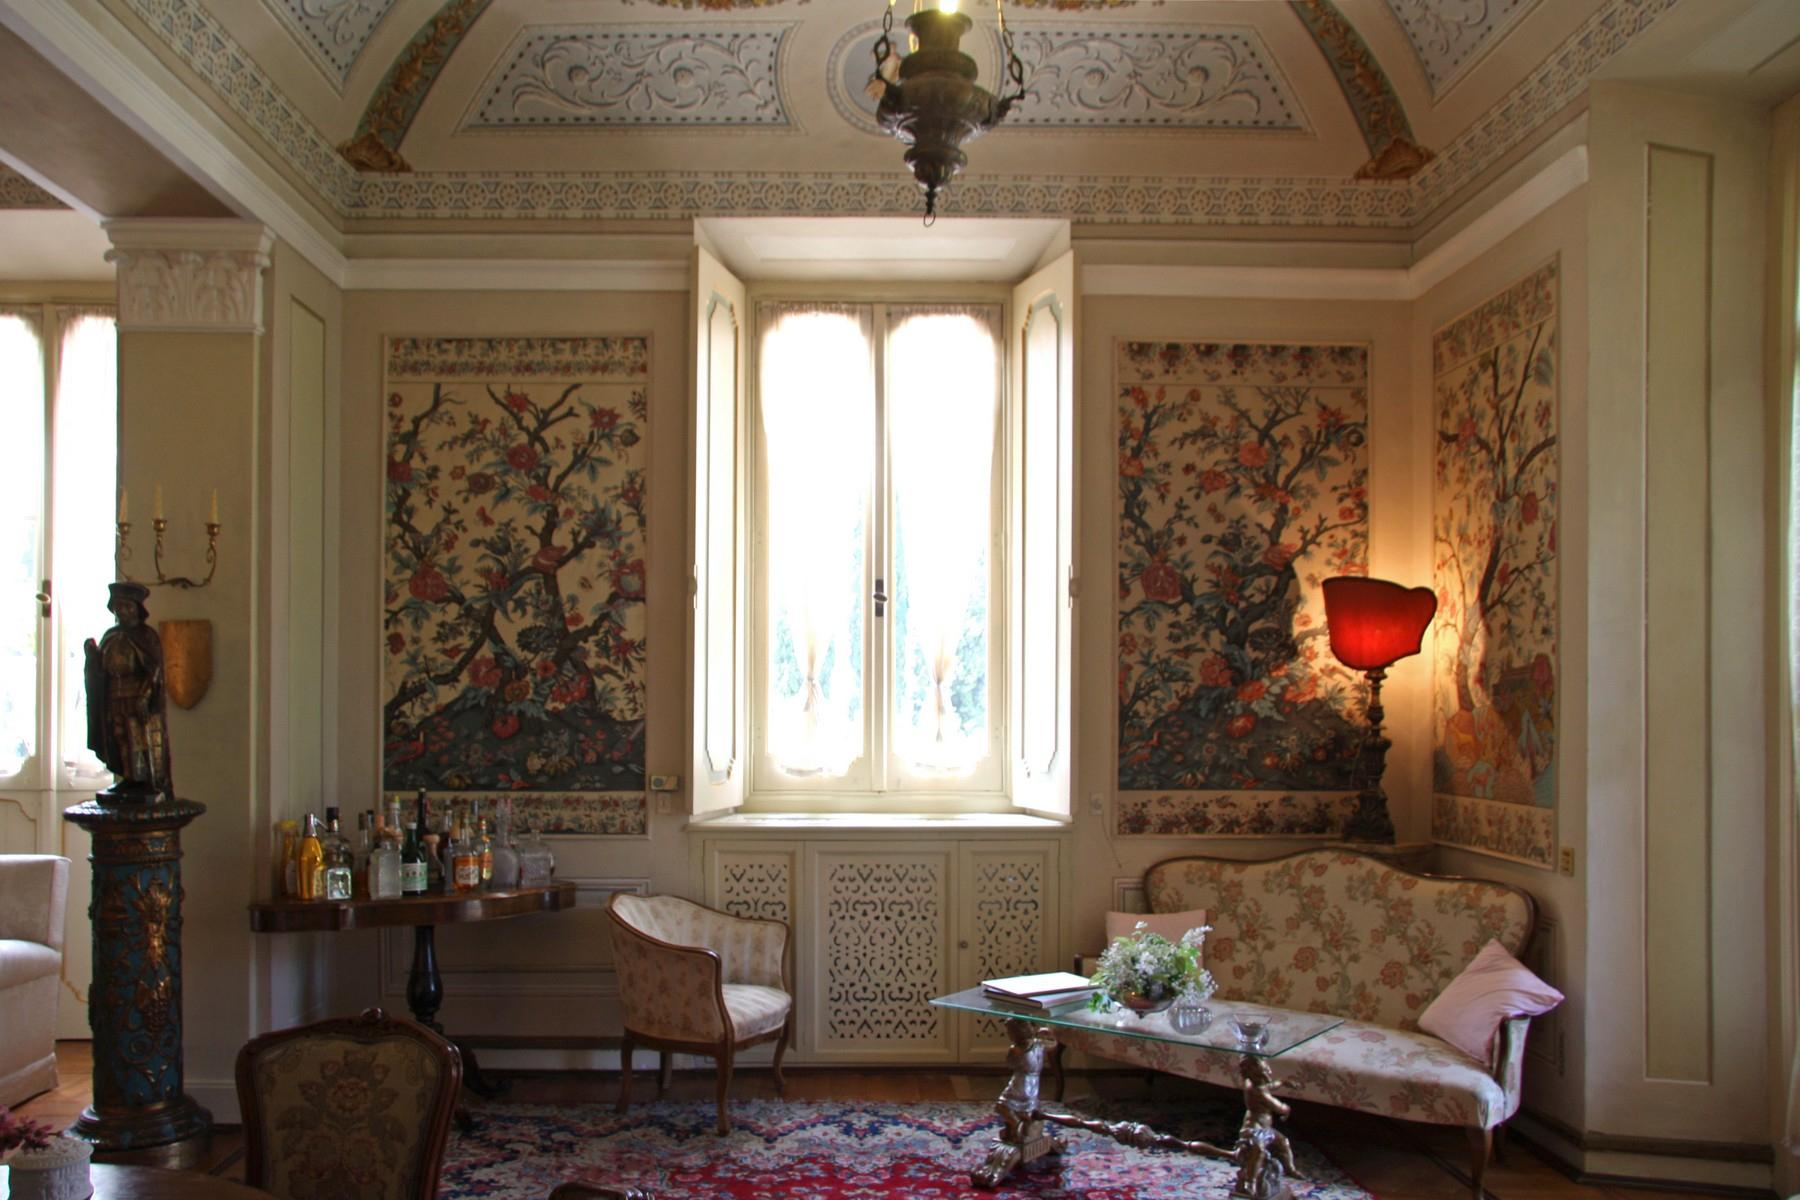 Magnificent historical villa with typical italian garden in Umbria - 31